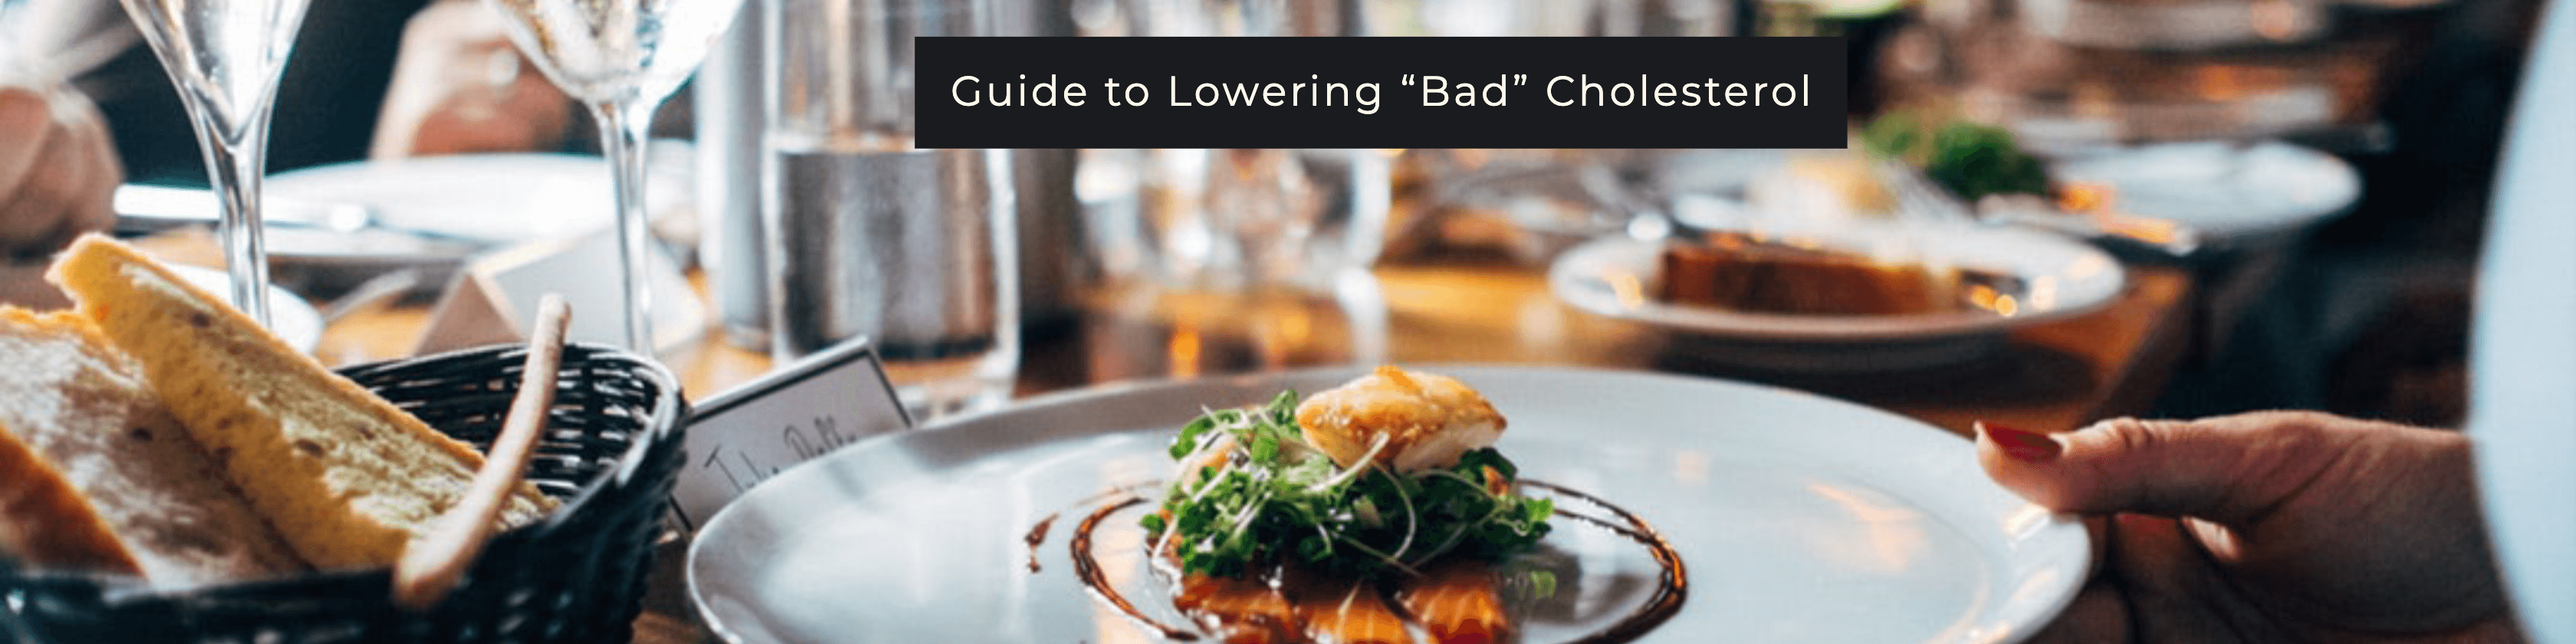 lowering bad cholesterol tips